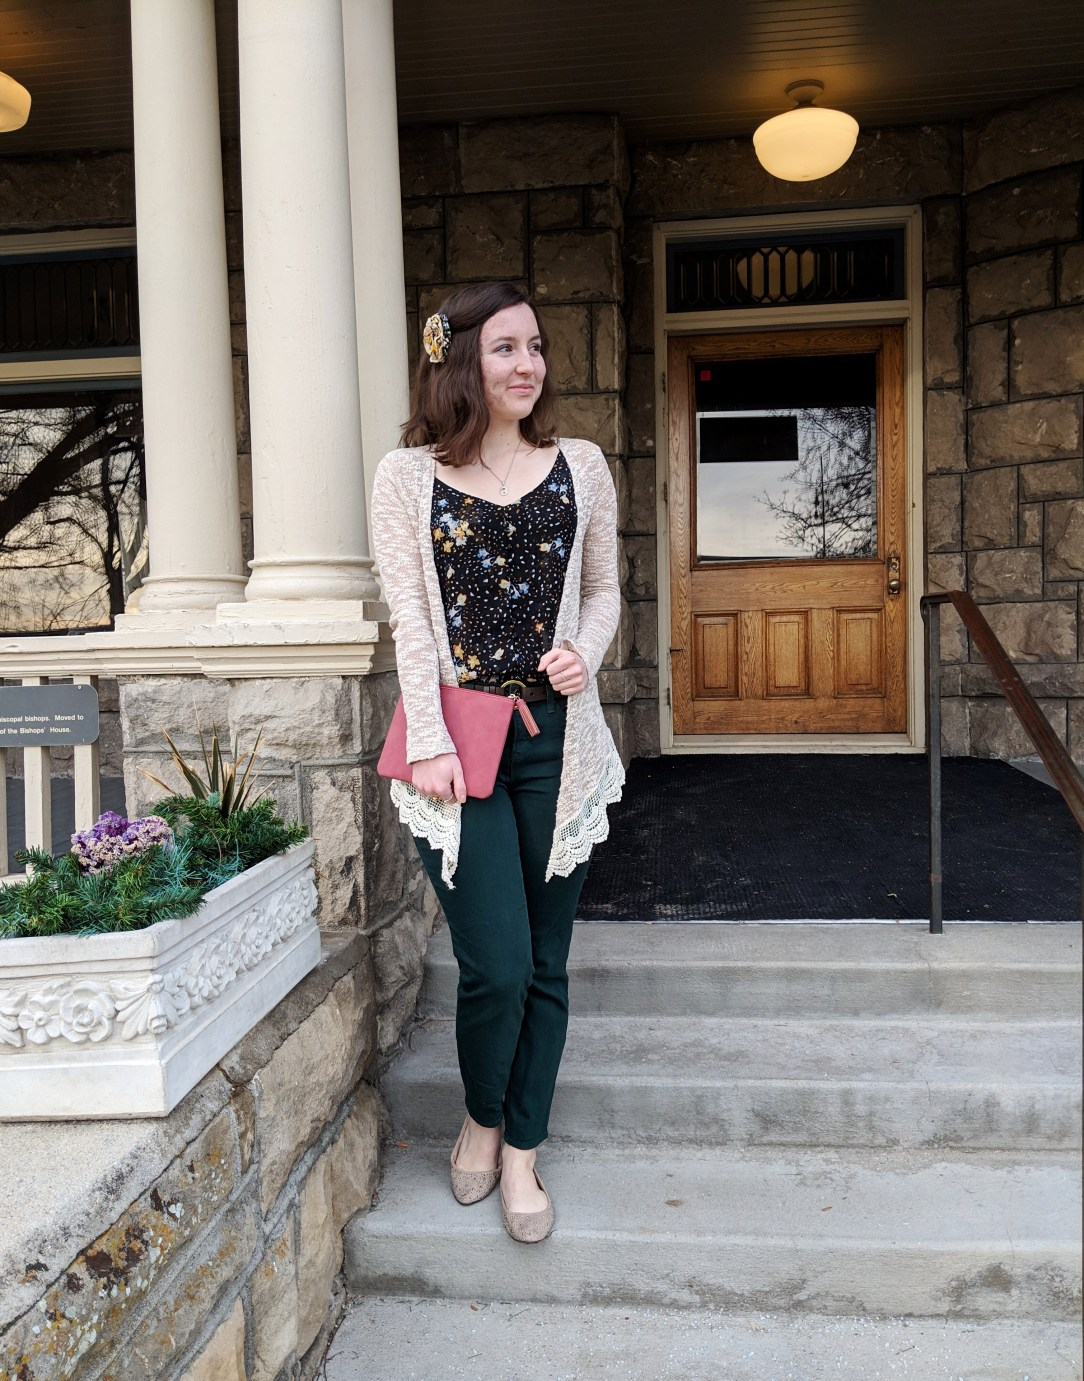 green pants with a floral tank top and beige cardigan